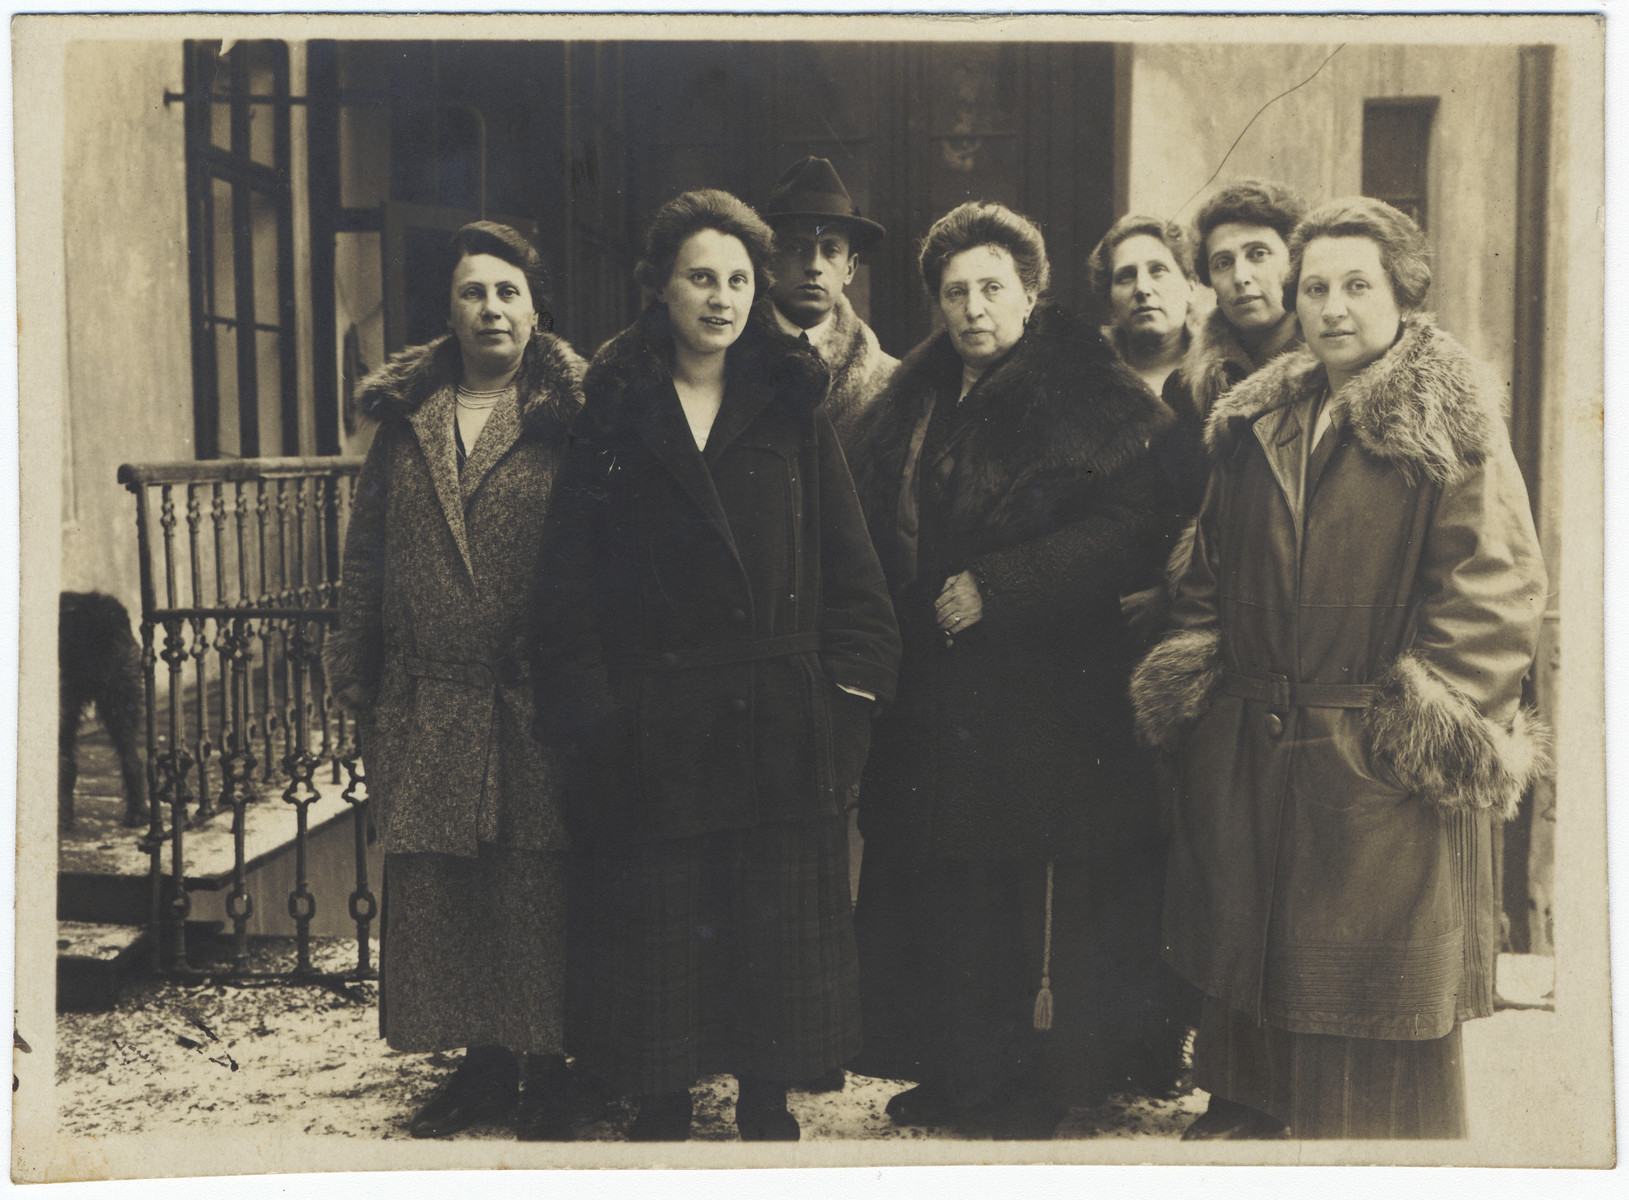 A Czech-Jewish woman poses surrounded by her six grown children outside her home in Nachod.  Mathilde Goldschmid is in the center.  Her children from left to right are Jenny (b.1878), Lola (b.1898), Hans (b.1891), Alice (b.1880), Lily (b.1884) and Marianna (b. 1886).  All five daughters perished in the Holocaust.  Only Hans survived the war in Palestine.